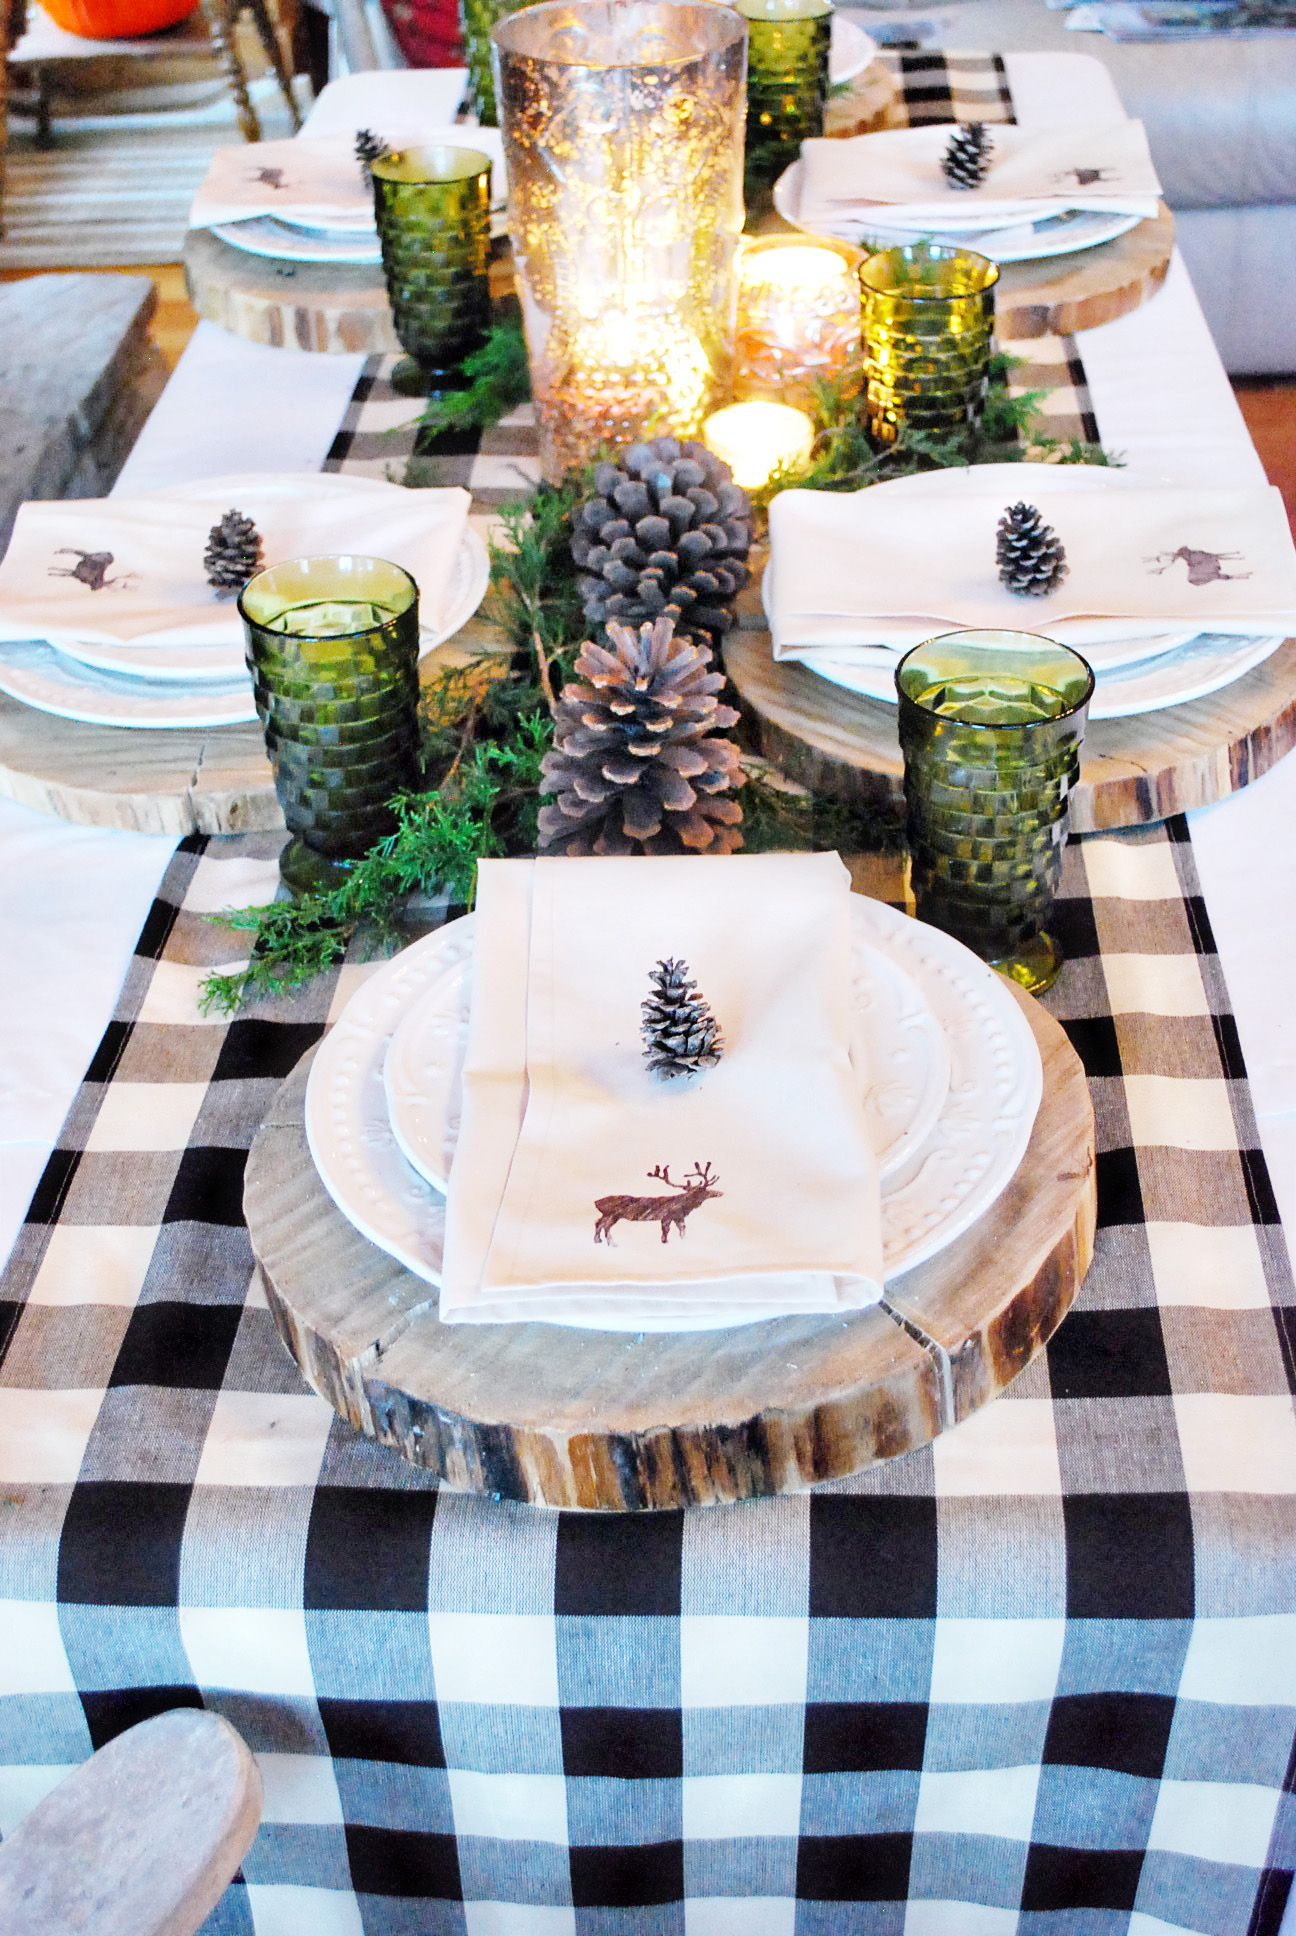 30 Thanksgiving Table Setting Ideas For A Festive Dcor Celebration ...